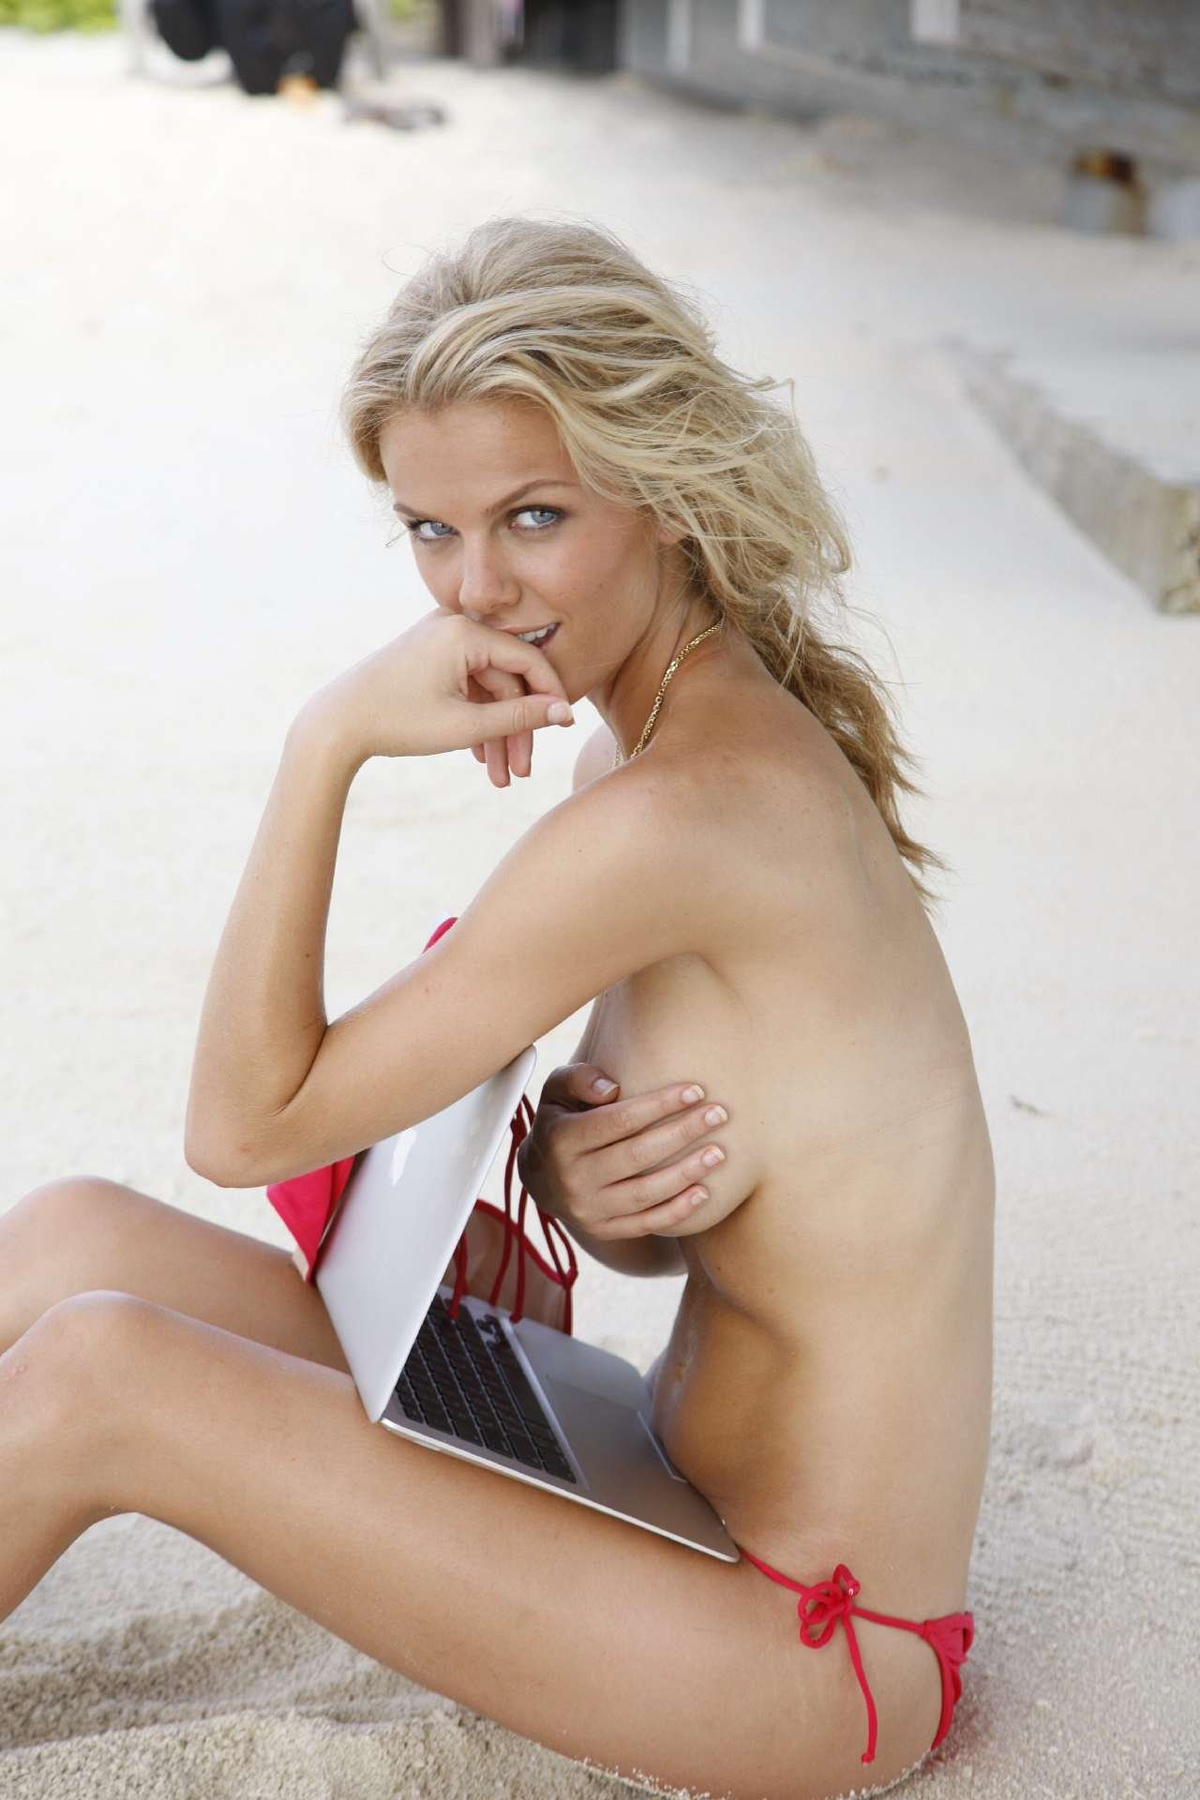 Brooklyn Decker in the Maldives, SI Swimsuit 2010